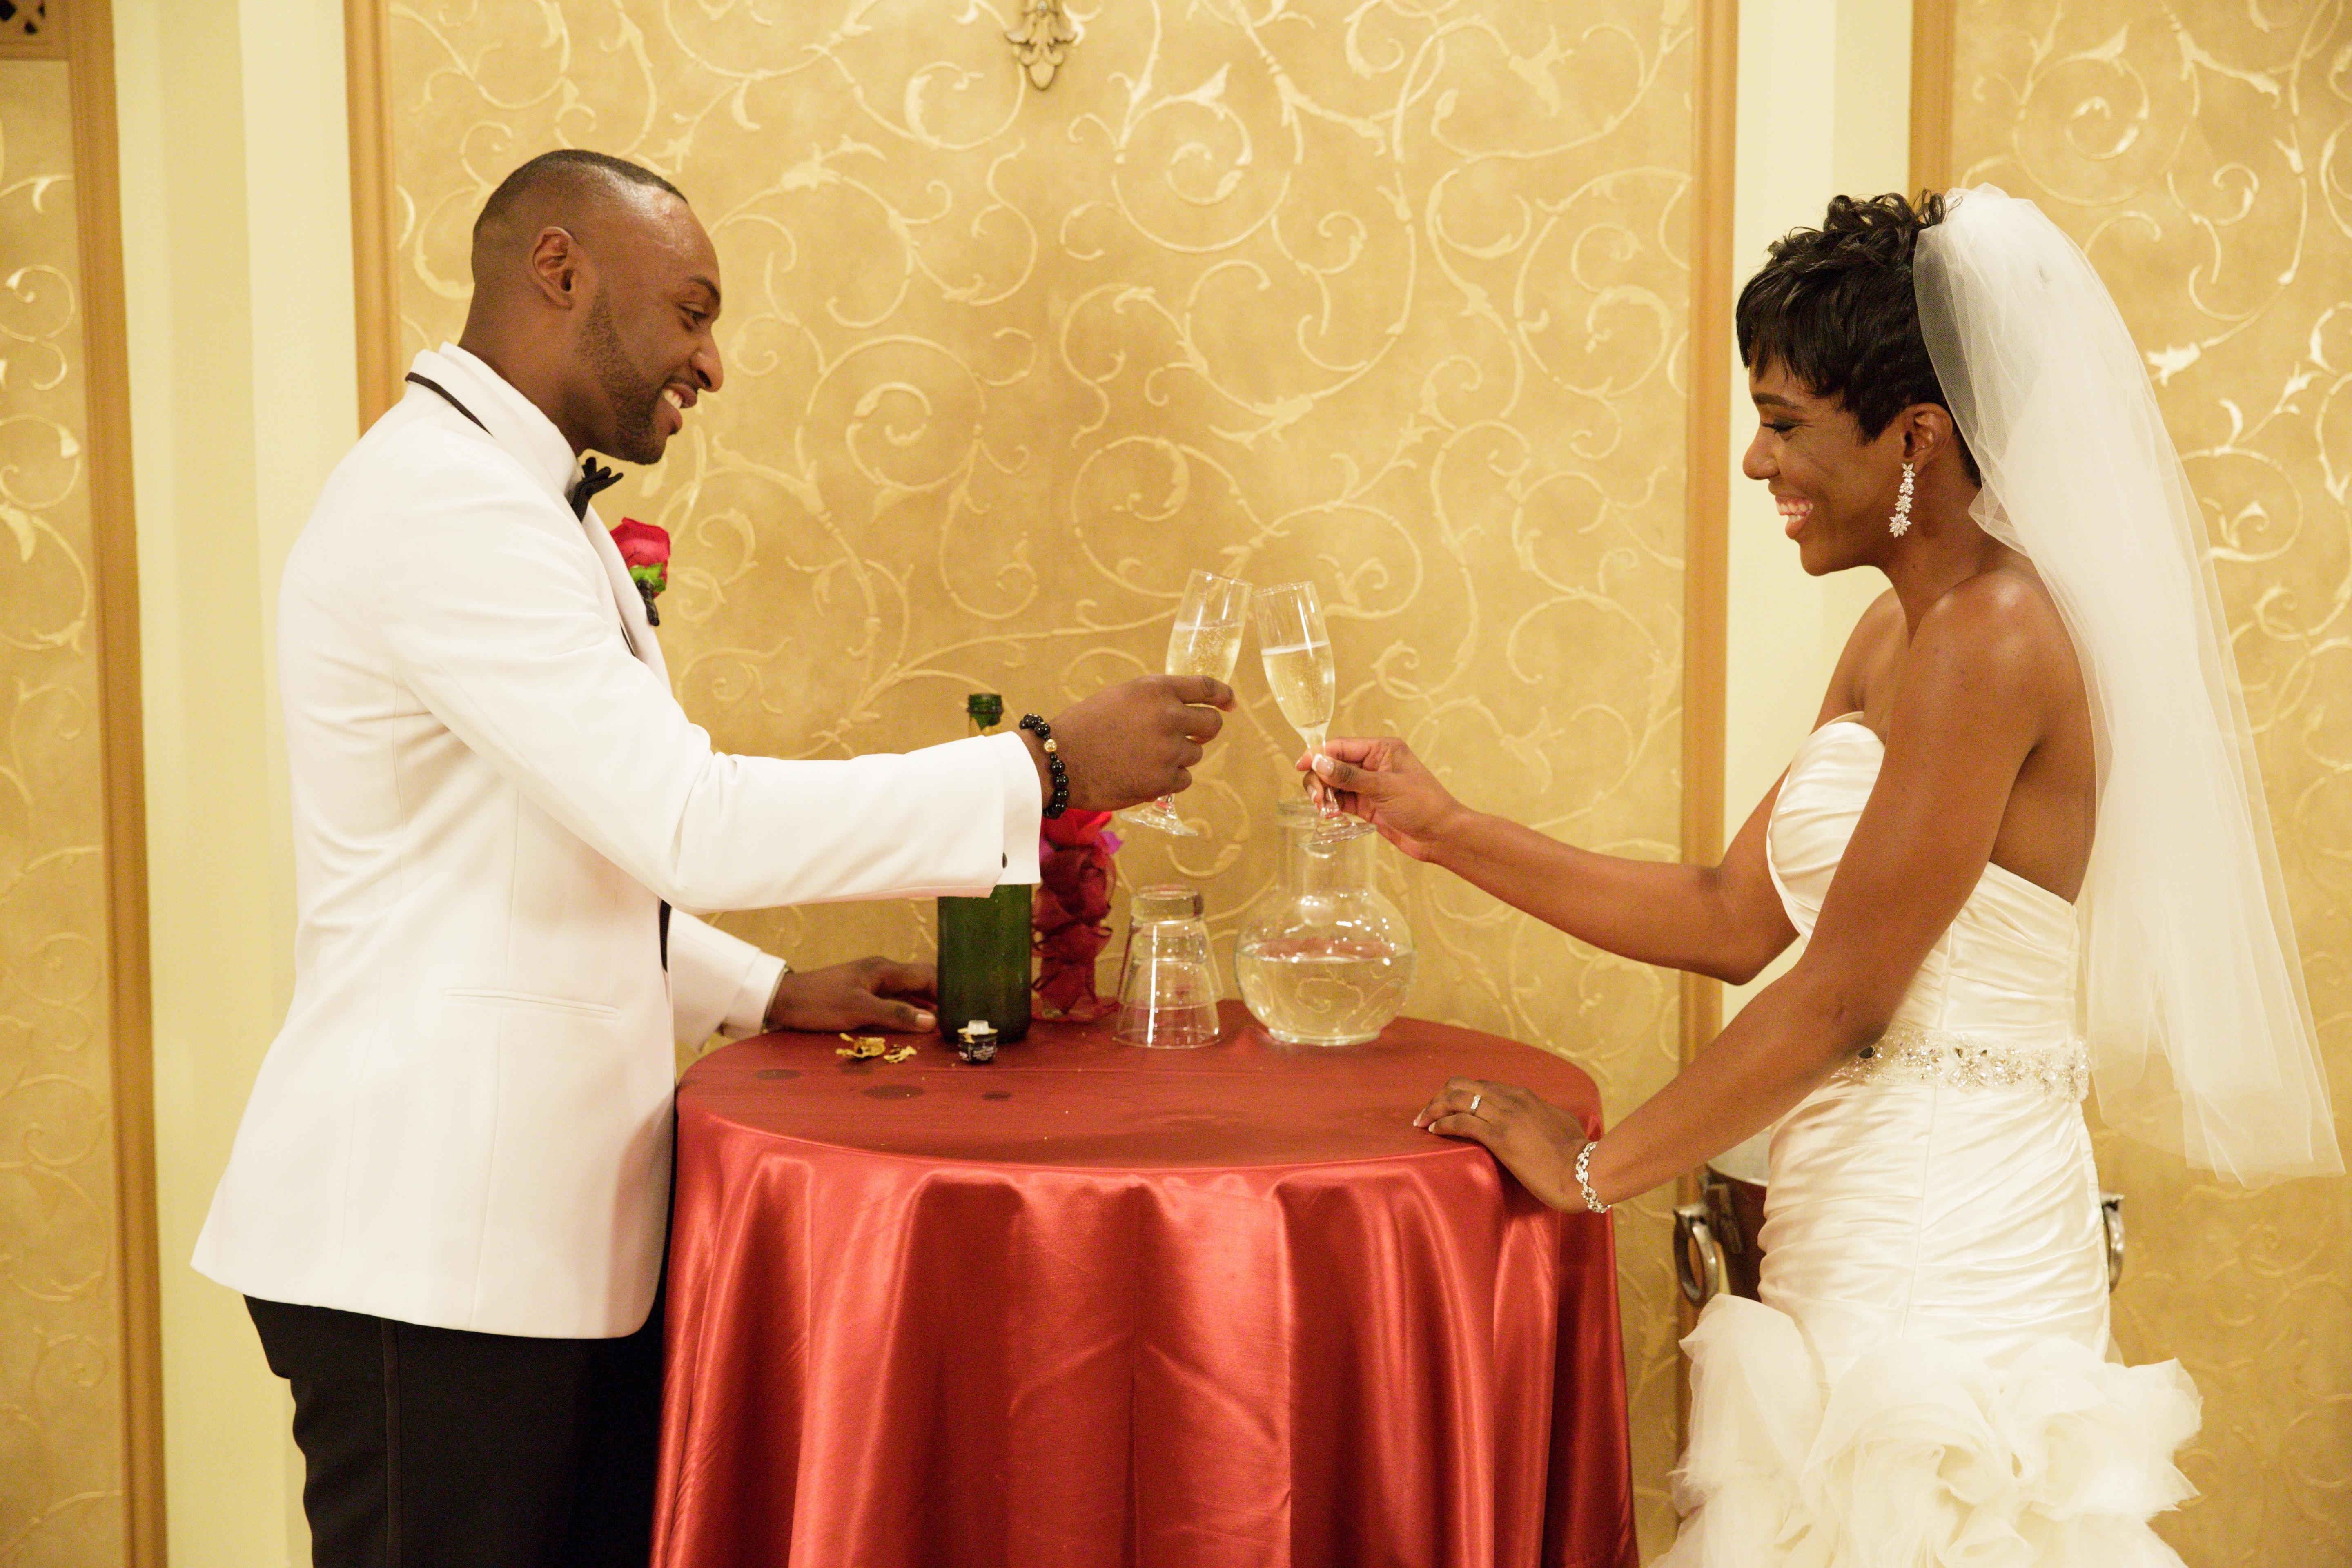 Married at first sight wedding special gifts